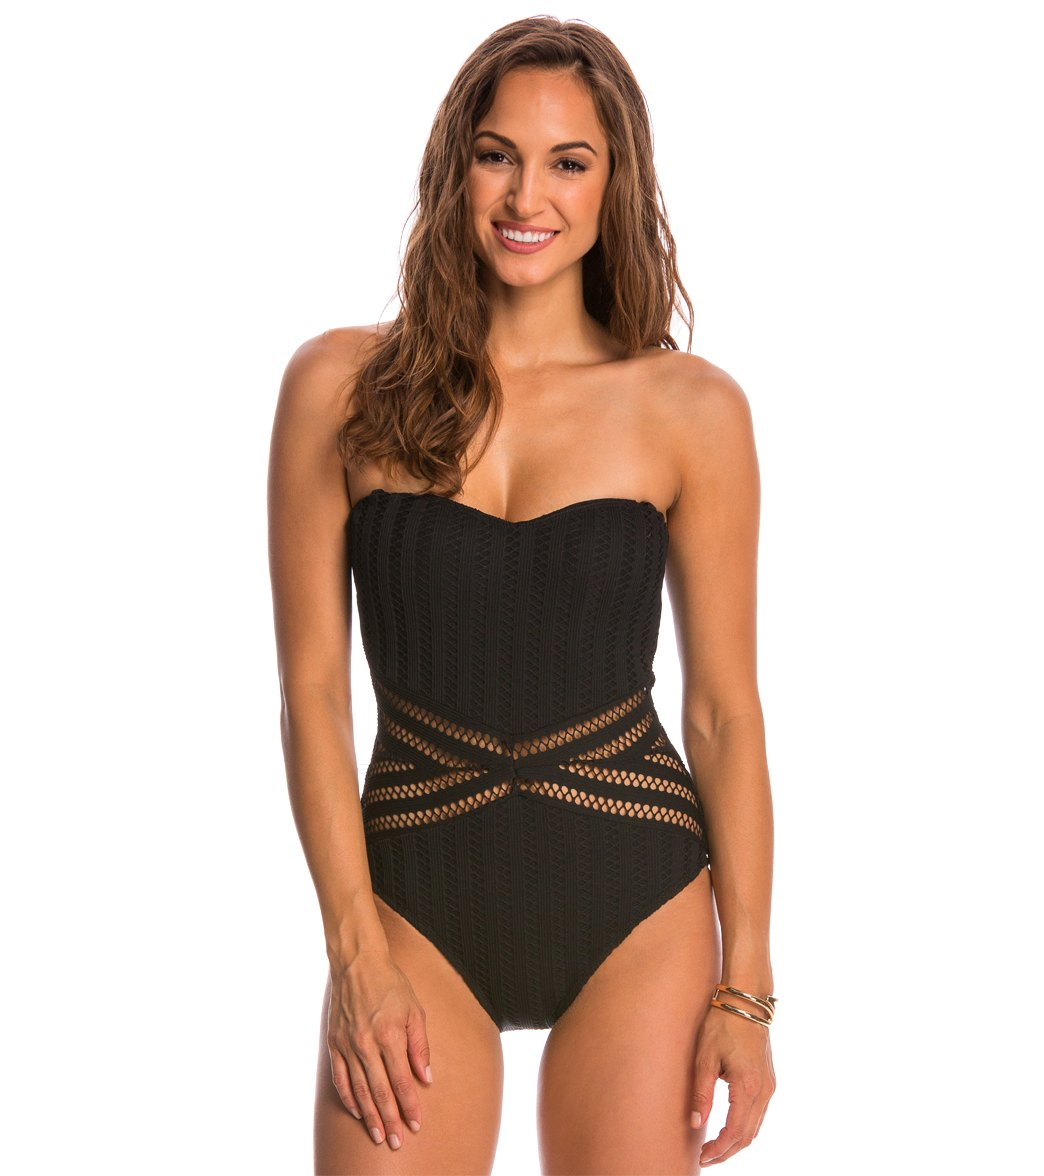 Kenneth Cole Swimwear Tough Luxe Bandeau One Piece Swimsuit At